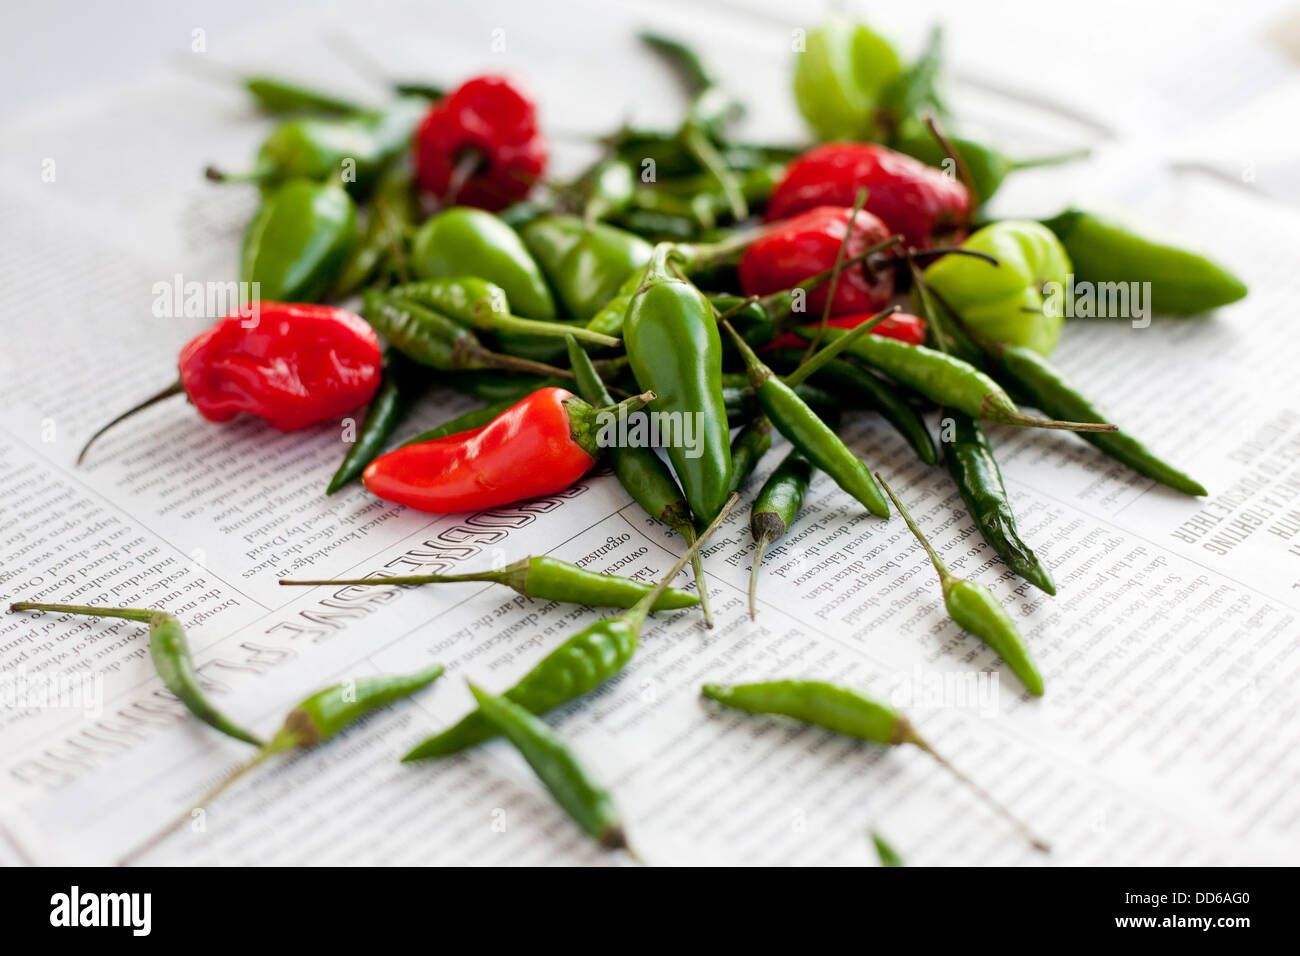 Pile of mixed chilli peppers, on a newspaper background. Side view. Bird's eye, Scotch Bonets, Jalapeños. Stock Photo